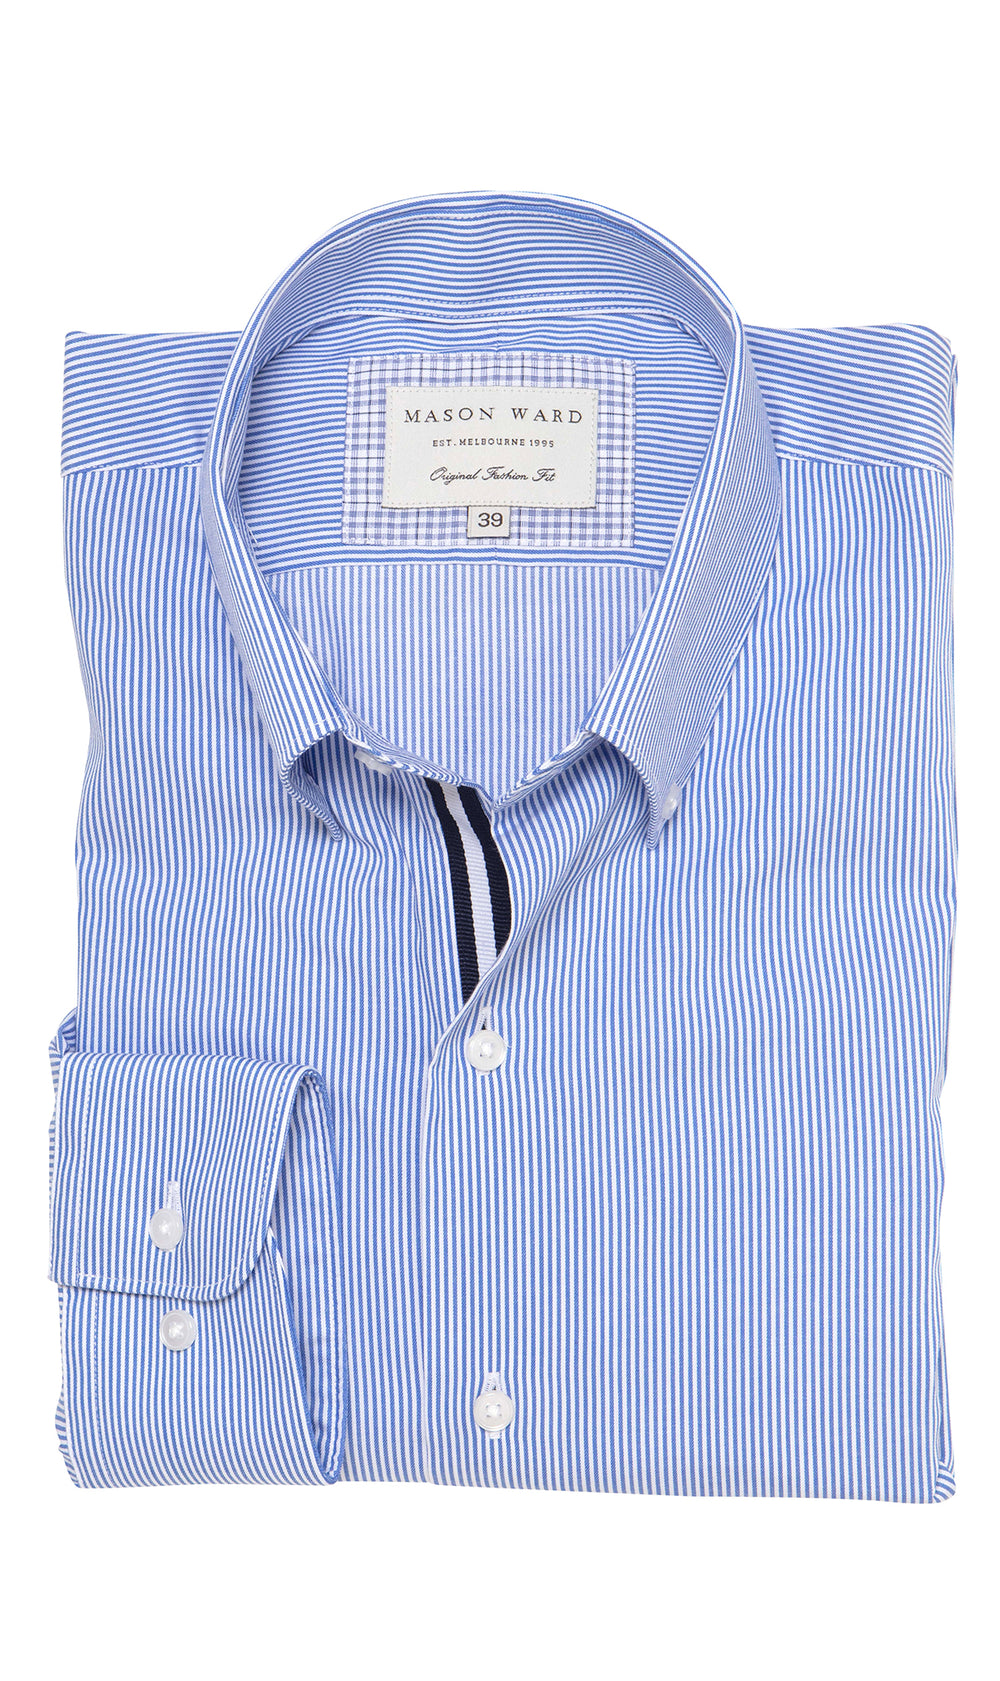 Mason Ward Helsingor Button Down Fine Stripe Men's Fashion Fit/ Regular Cuff Shirt